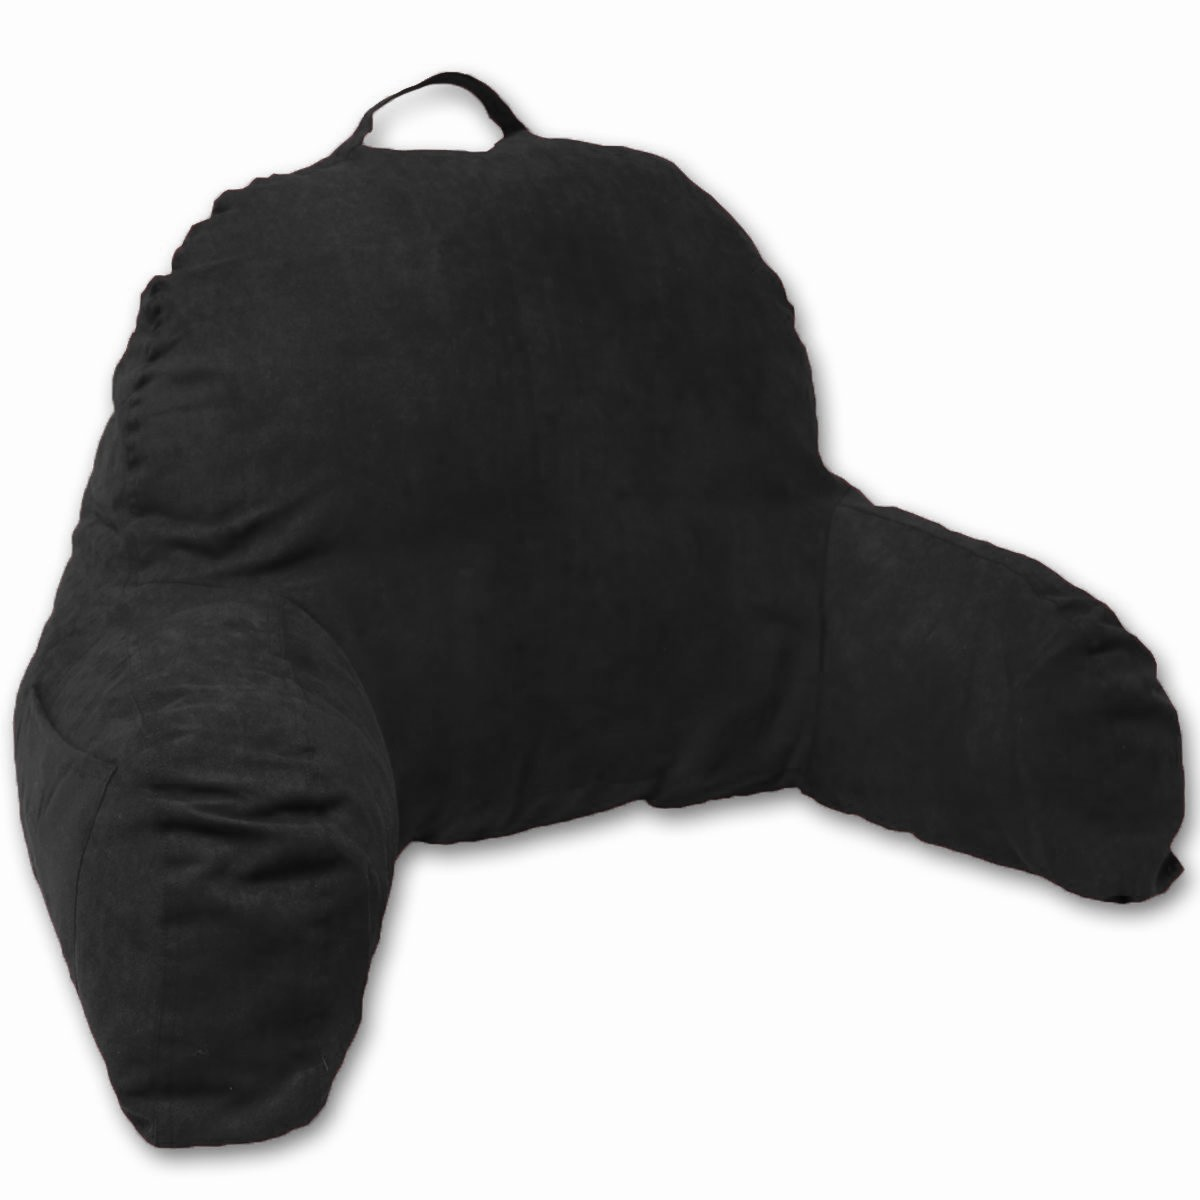 Deluxecomfort Com Microsuede Bedrest Pillow Best Bed Rest Pillows In 10 Different Colors